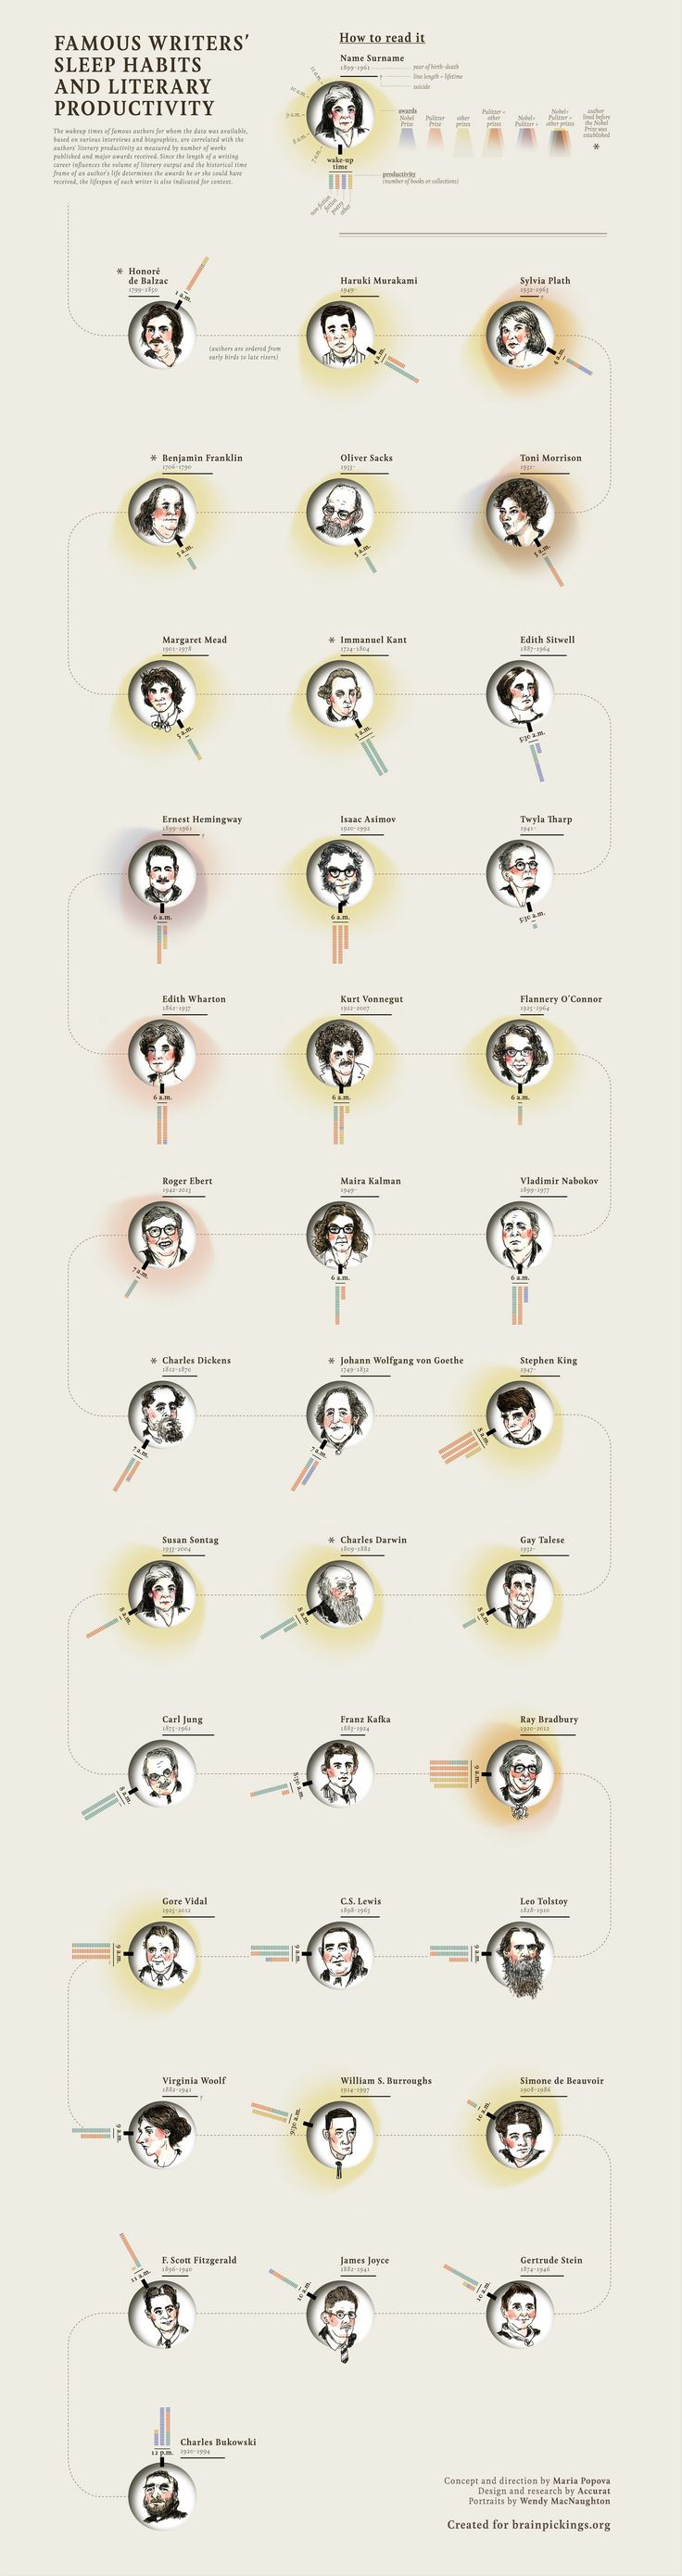 The sleeping habits of famous writers